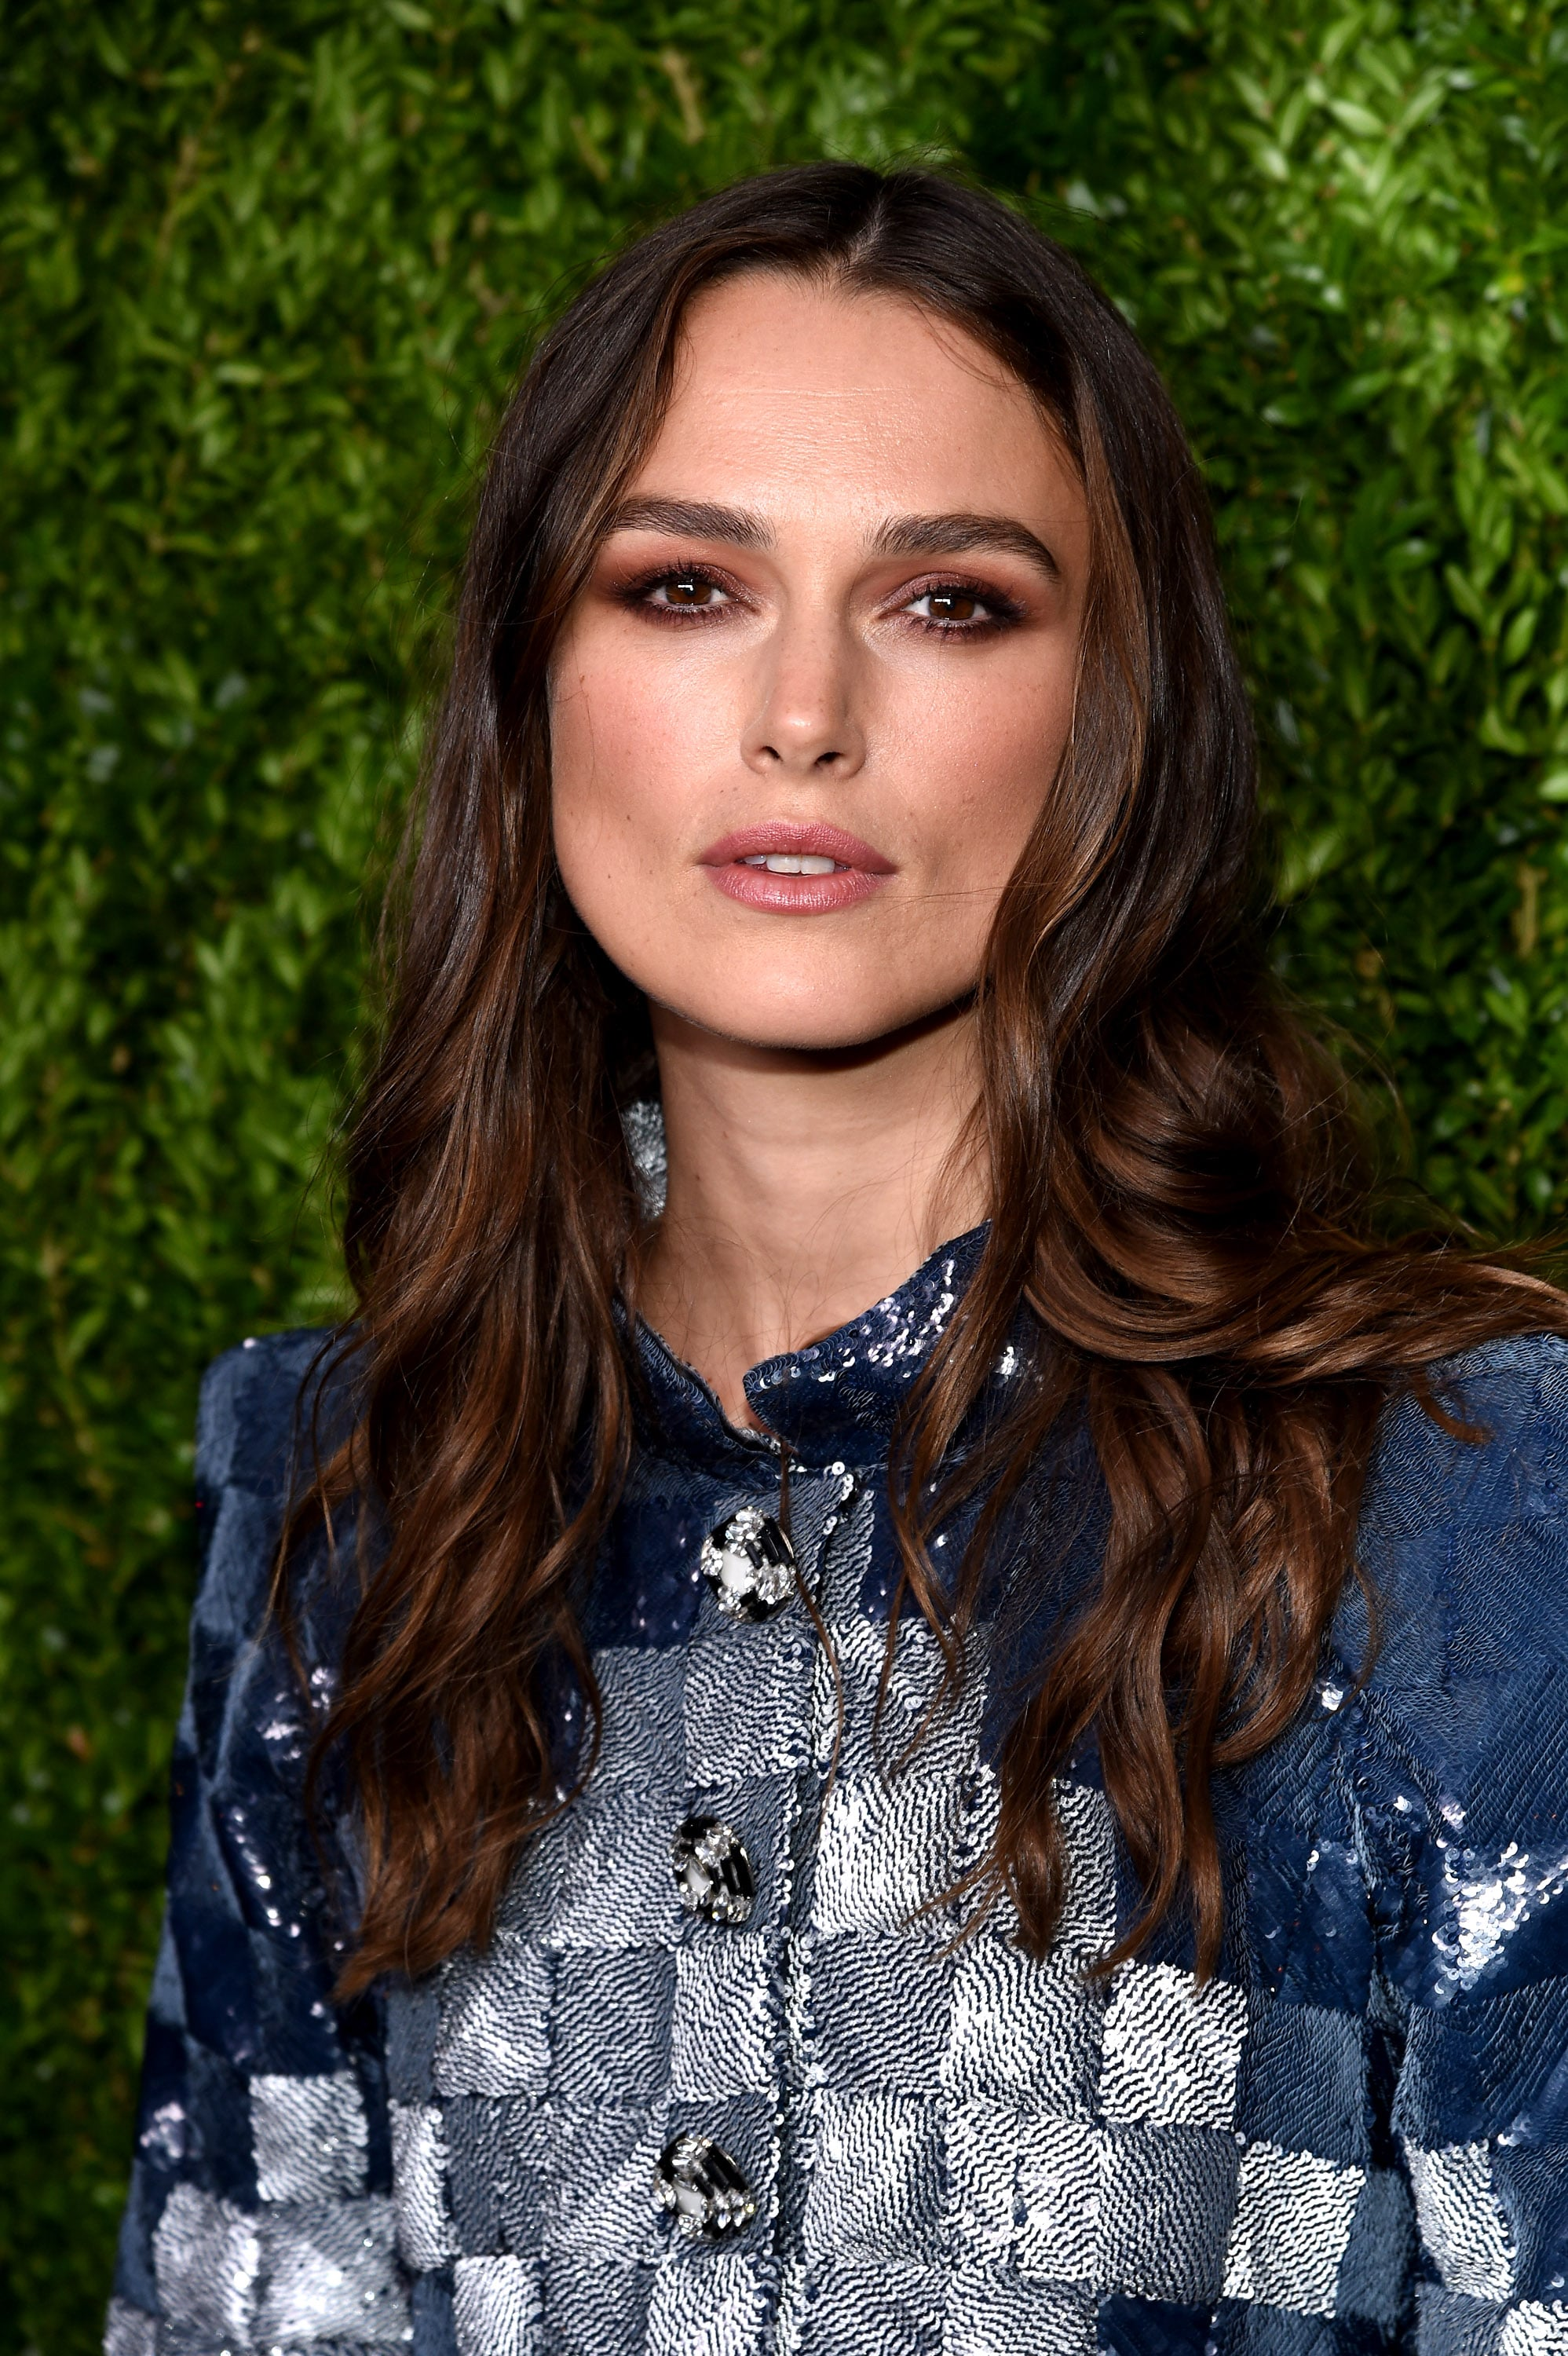 NEW YORK, NY - SEPTEMBER 06:  Actress Keira Knightley attends the CHANEL Fine Jewellery Dinner in honour of Keira Knightley at The Jewel Box, Bergdorf Goodman on September 6, 2016 in New York City.  (Photo by Dimitrios Kambouris/WireImage  )